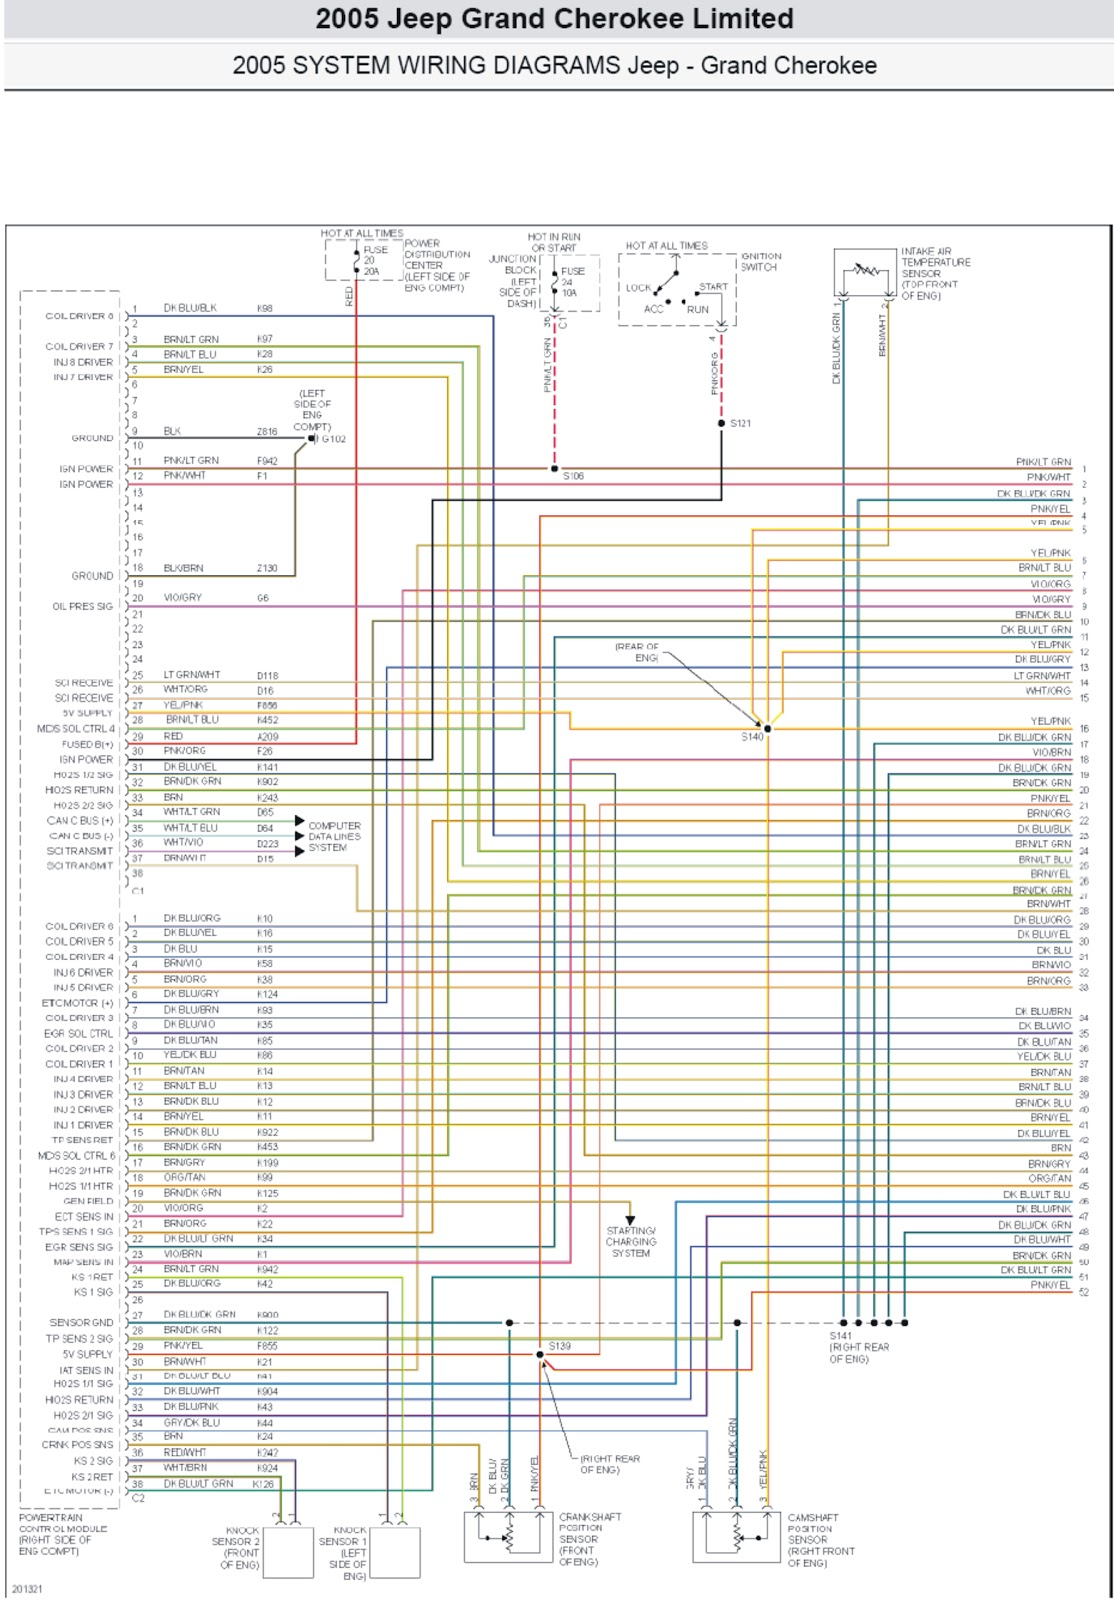 diagram] 04 jeep grand cherokee wiring diagram full version hd quality wiring  diagram - ladderdiagram.vinciconmareblu.it  diagram database